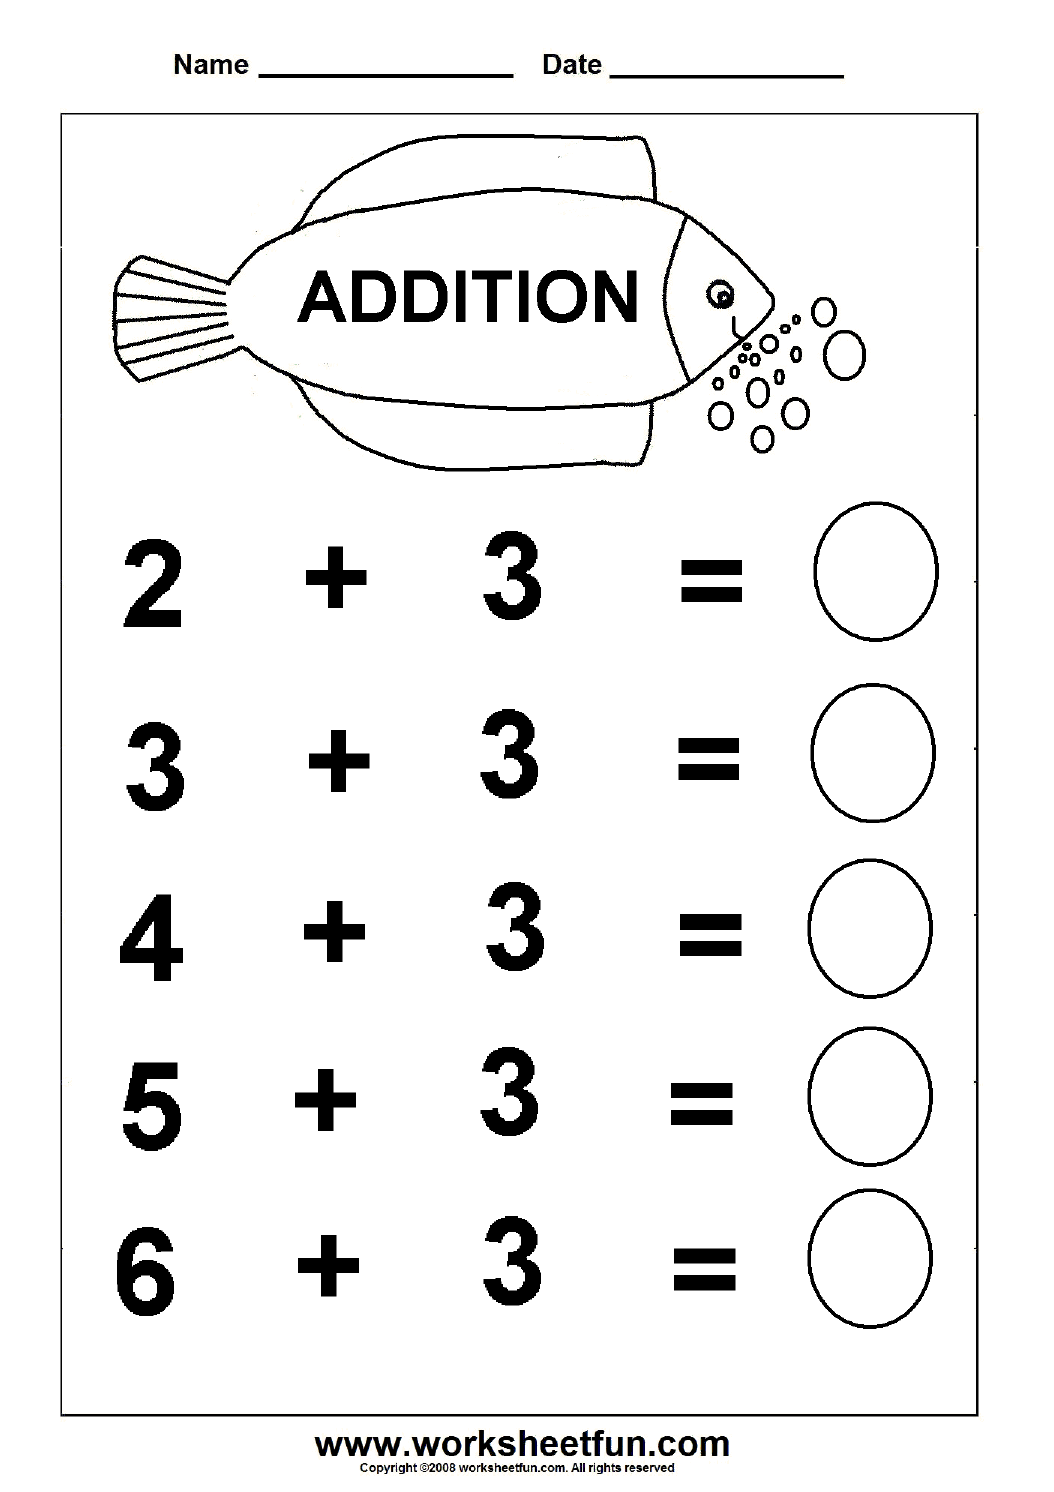 Printables Kindergarten Math Worksheets Addition And Subtraction addition basic facts free printable worksheets beginner 6 kindergarten worksheets